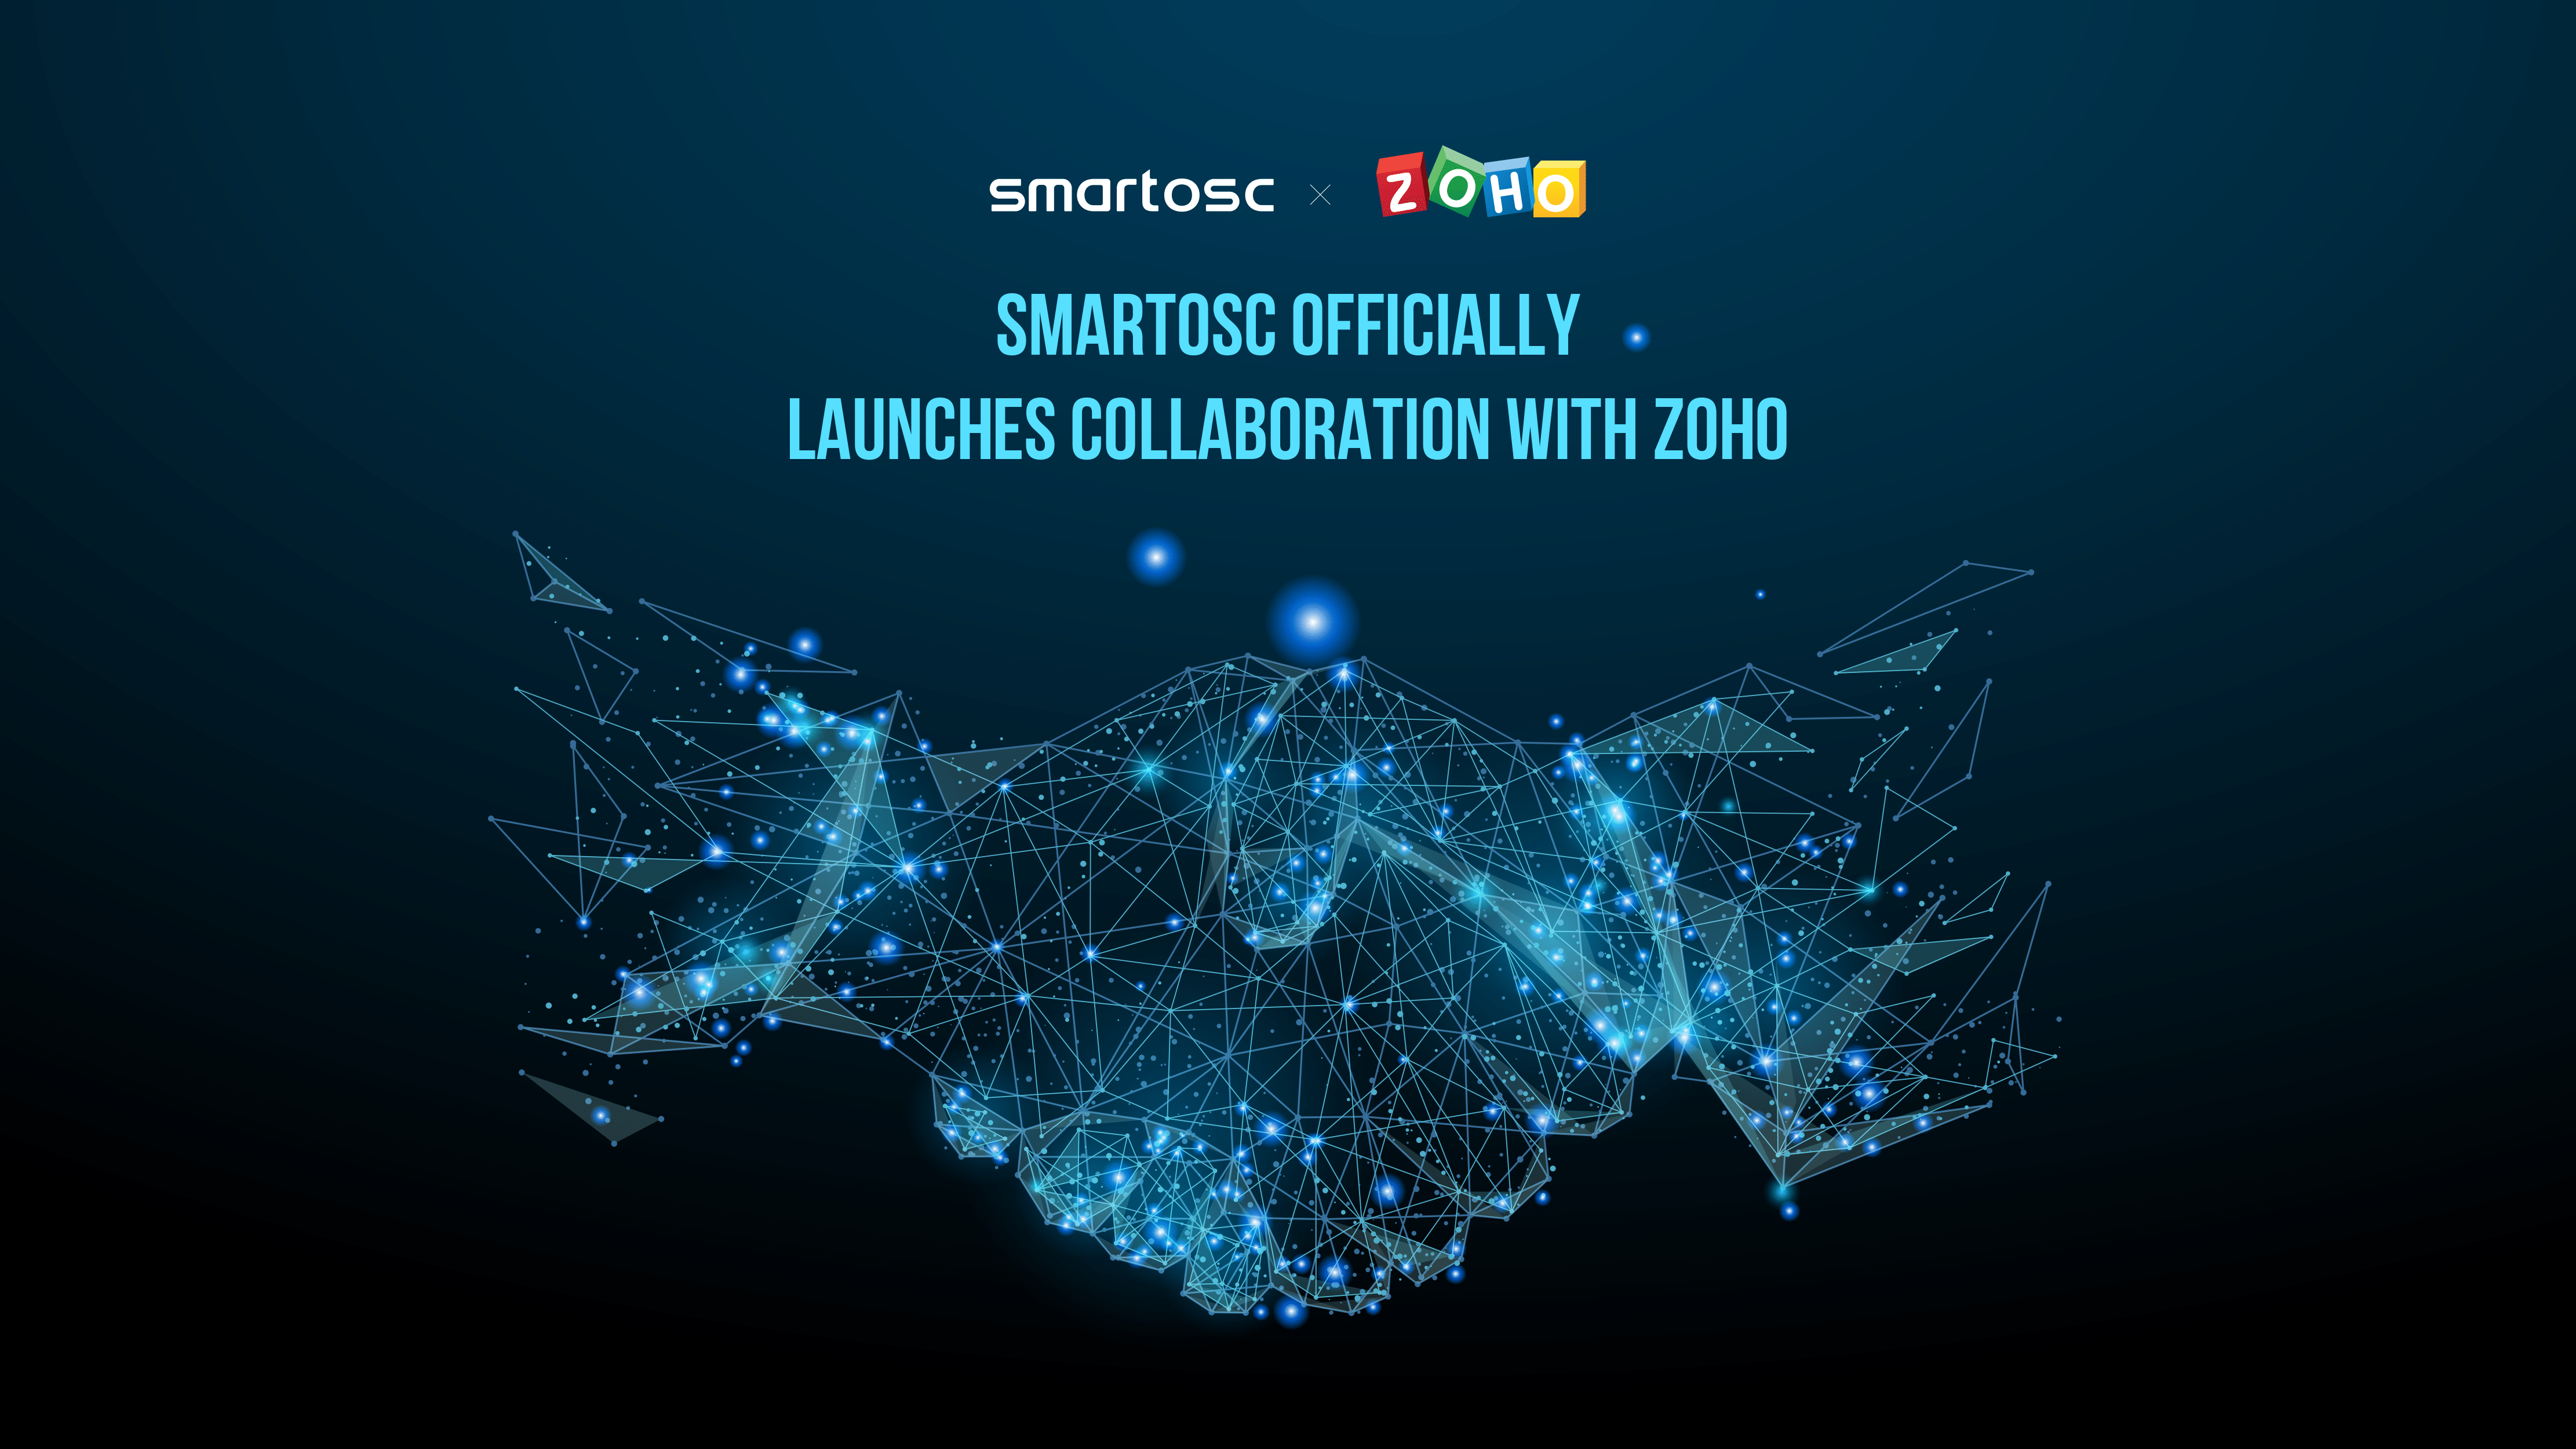 SmartOSC x Zoho Collaboration